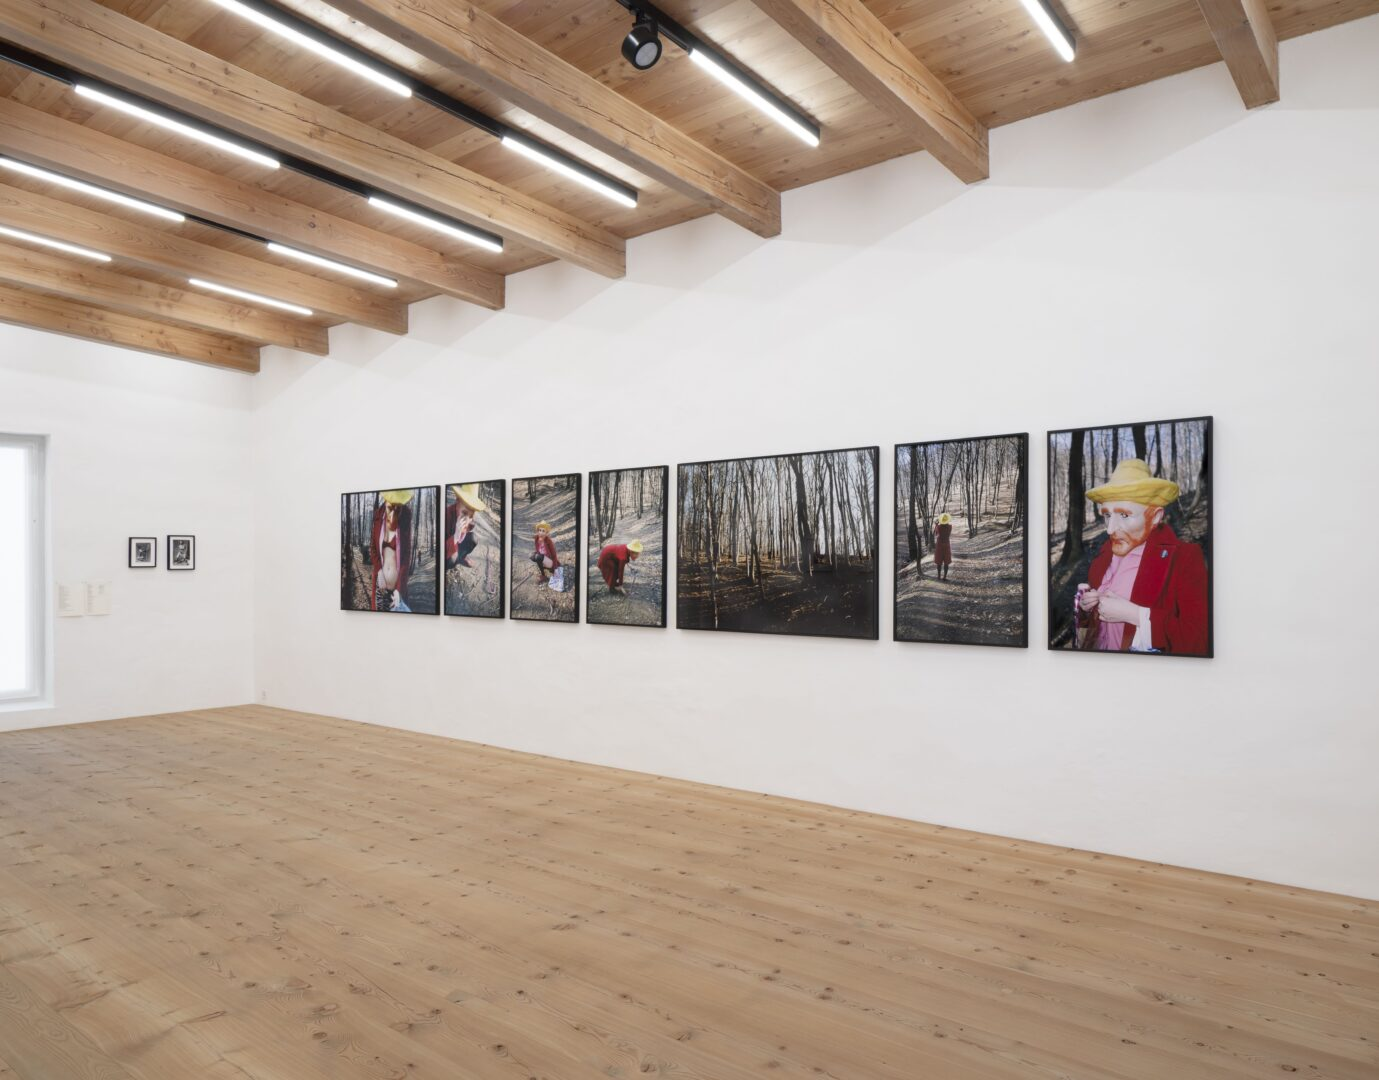 Exhibition View Groupshow «Up to and Including Limits: After Carolee Schneemann; view on Katrina Daschner, Vincent, 2002» at Muzeum Susch, Susch, 2019-2020 / Photo: Maja Wirkus / Courtesy: the artist and Muzeum Susch